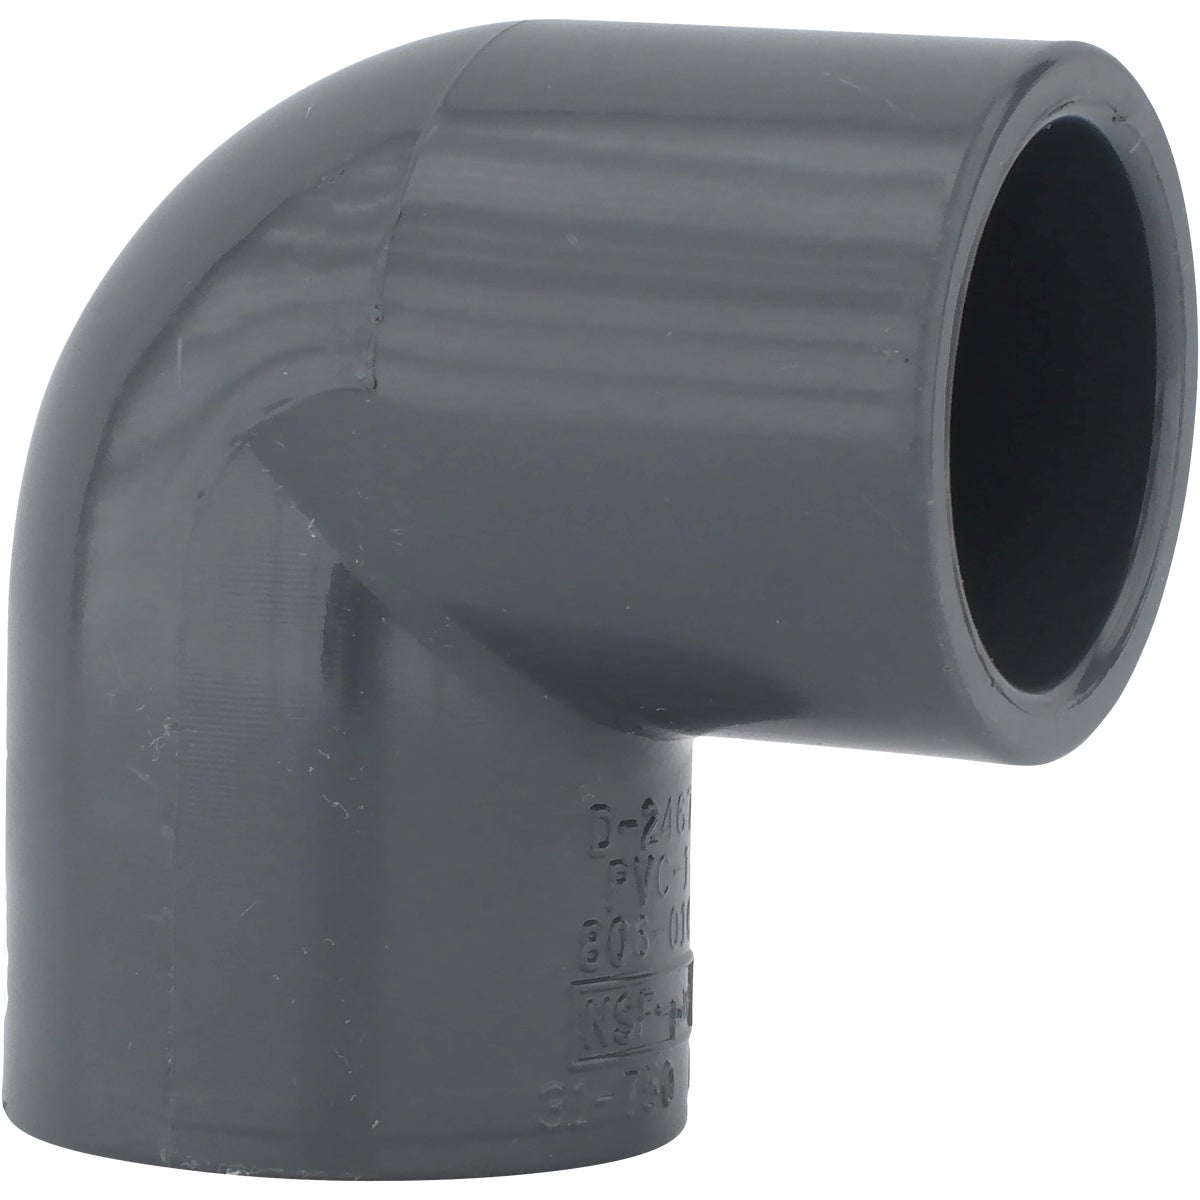 "1"" 90D SCH80 PVC ELBOW - 307108 by Genova Inc"